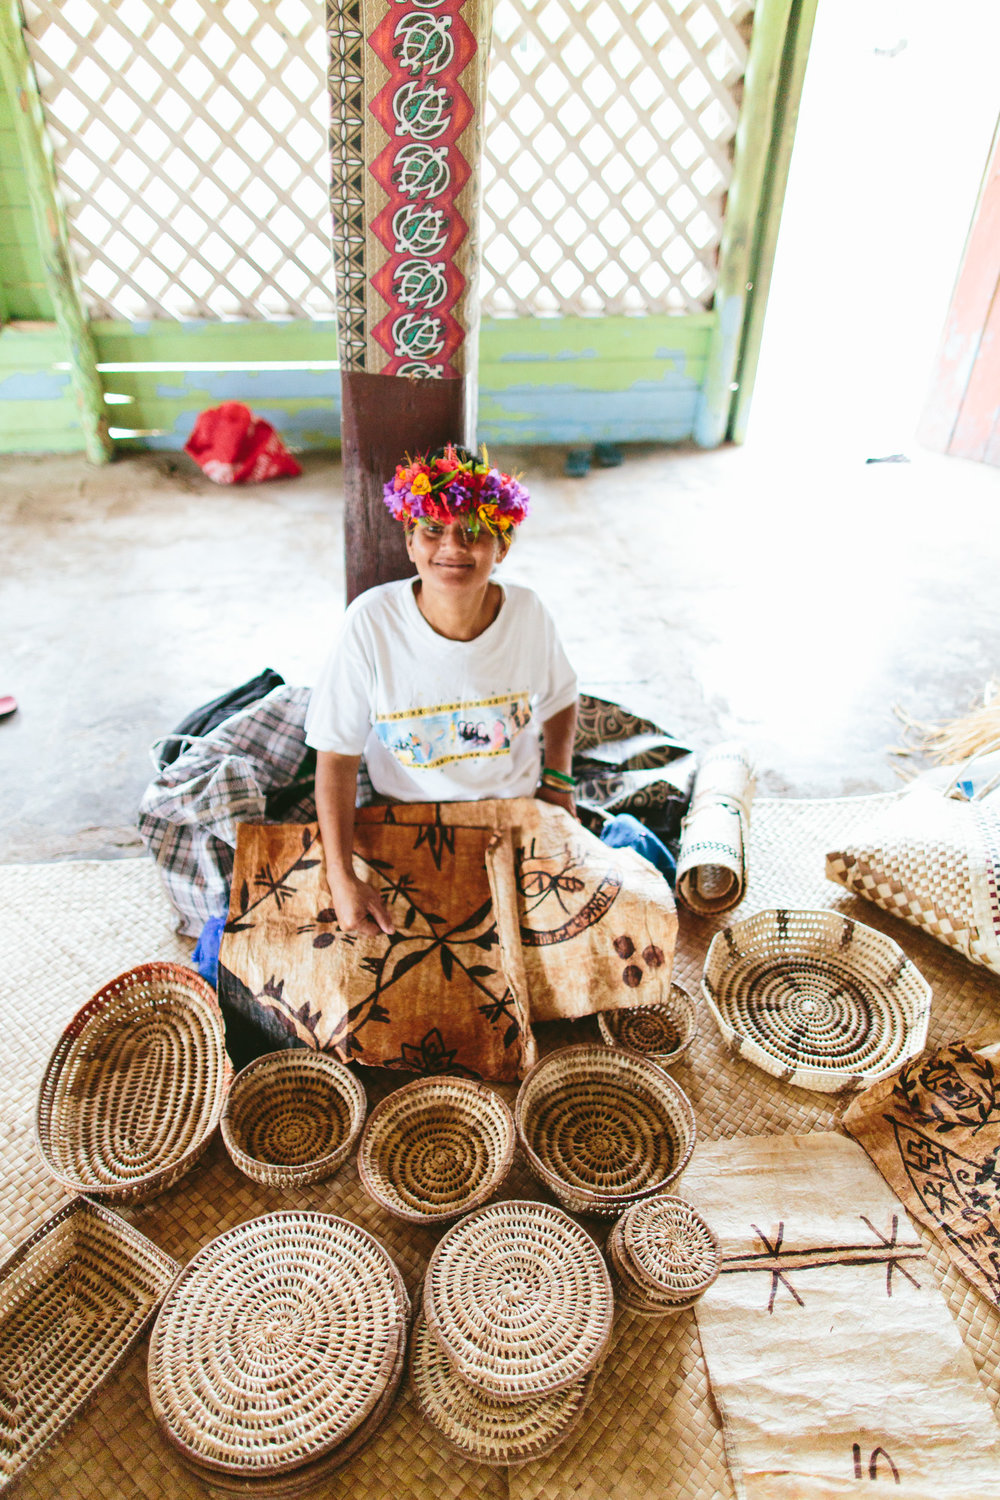 Fiji Village Handicraft - The Remote Resort Fiji Islands